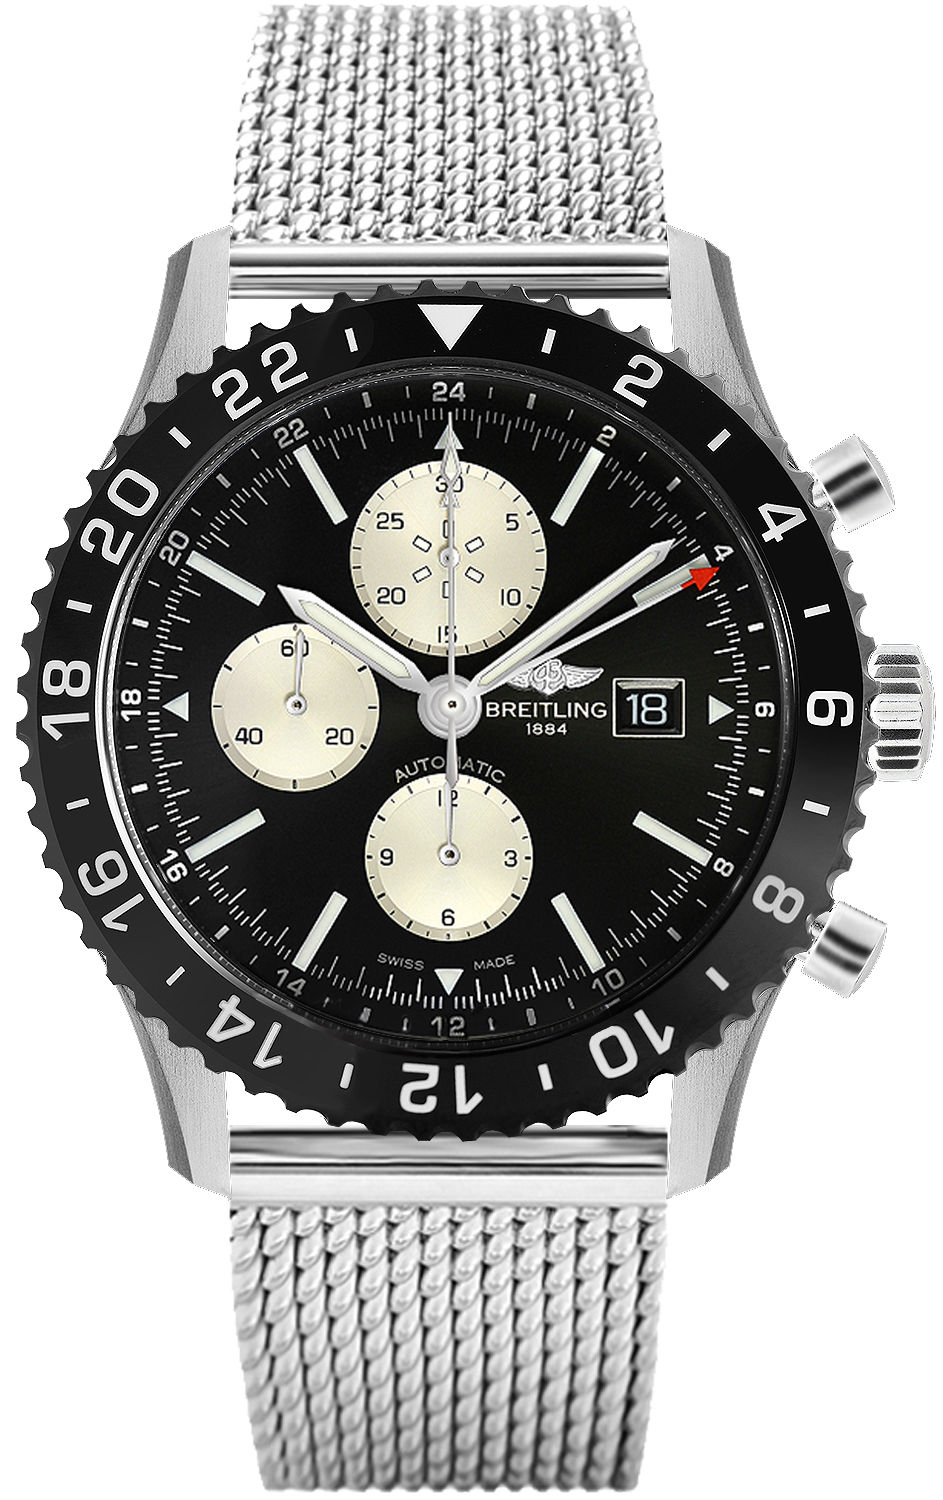 Breitling_Chronoliner_Y2431012BE10152A